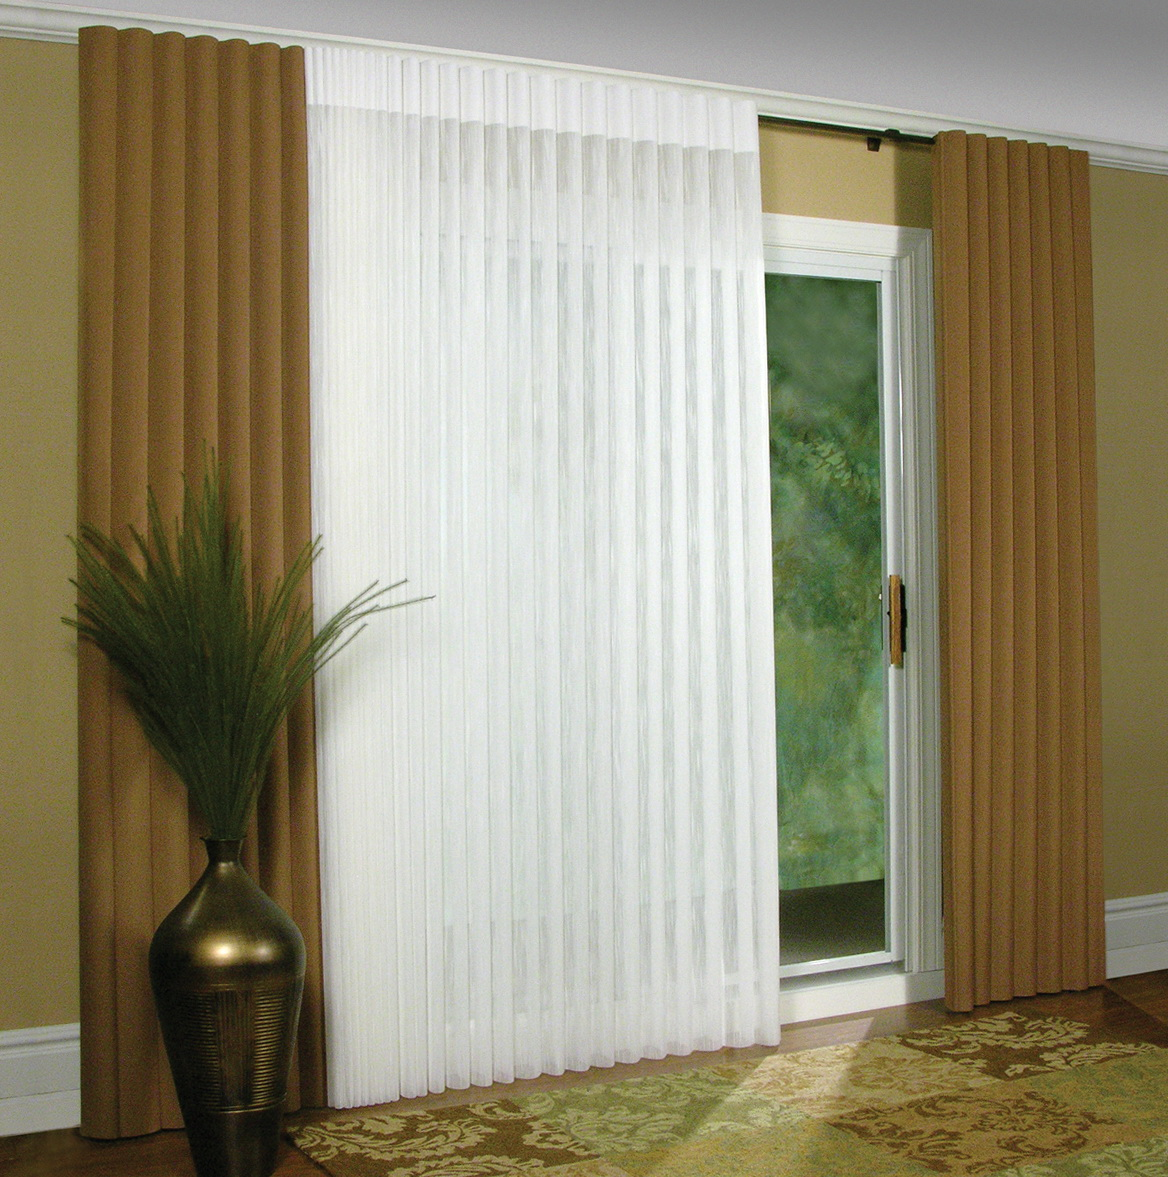 Curtains and blinds for sliding glass doors home design for Sliding glass doors curtains